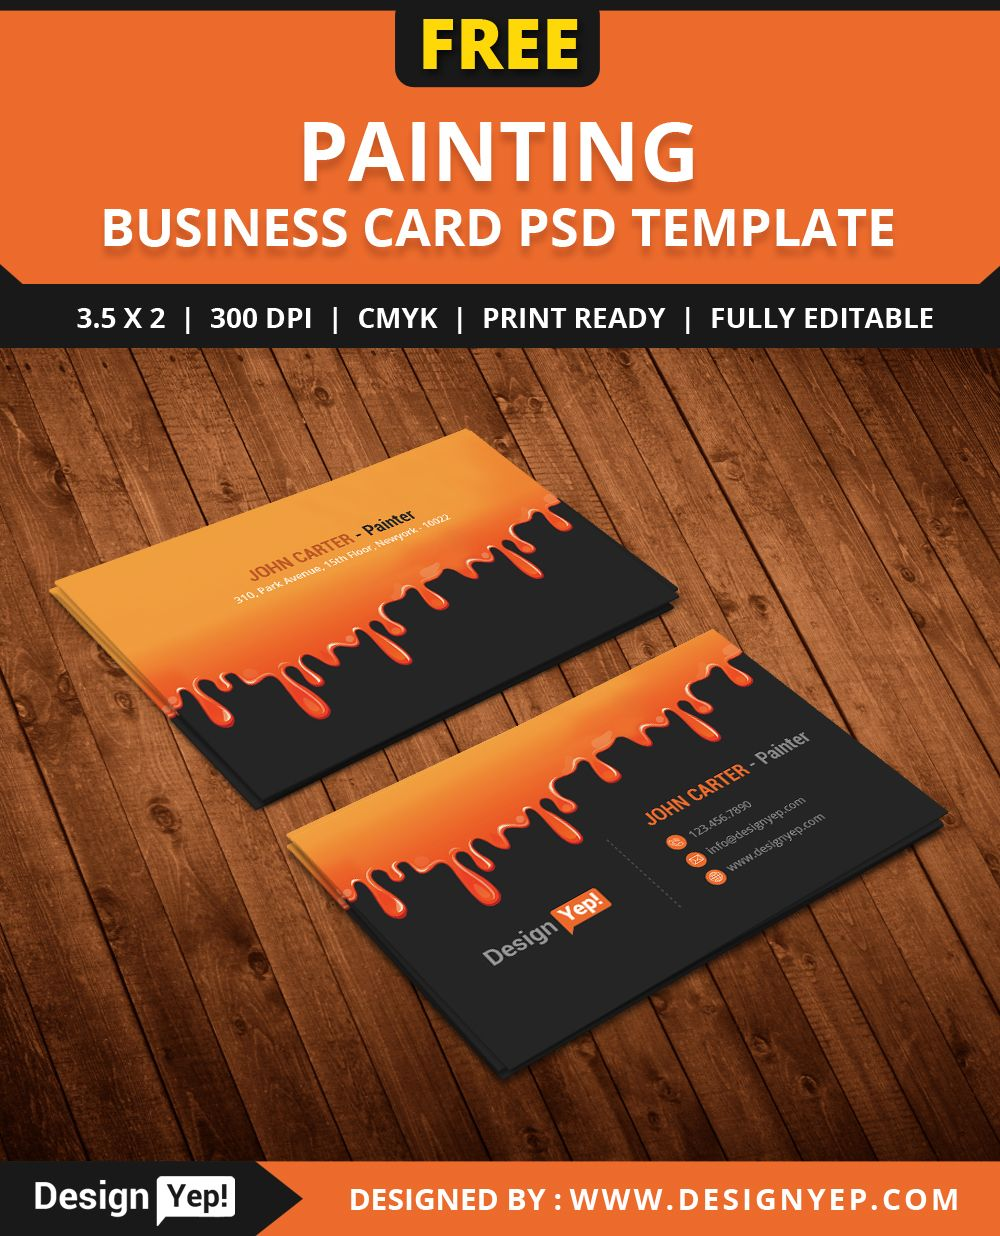 Free painting business card psd template free business card free painting business card psd template cheaphphosting Images